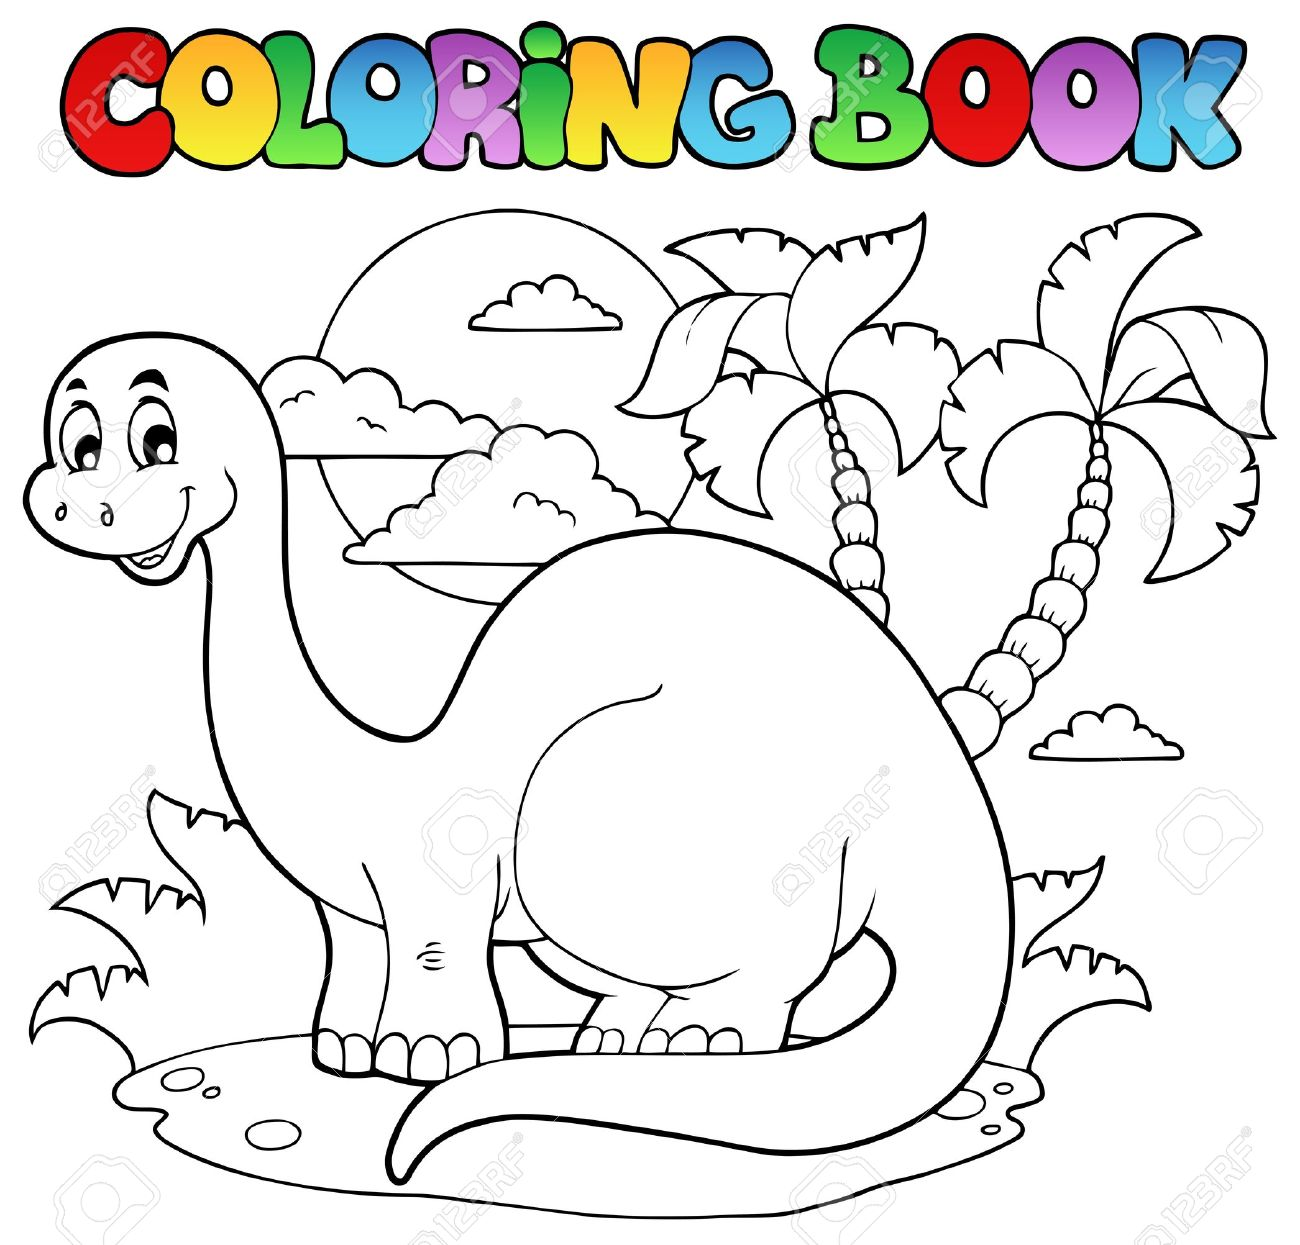 Coloring pages vector - Coloring Book Dinosaur Scene 1 Vector Illustration Stock Vector 13057393